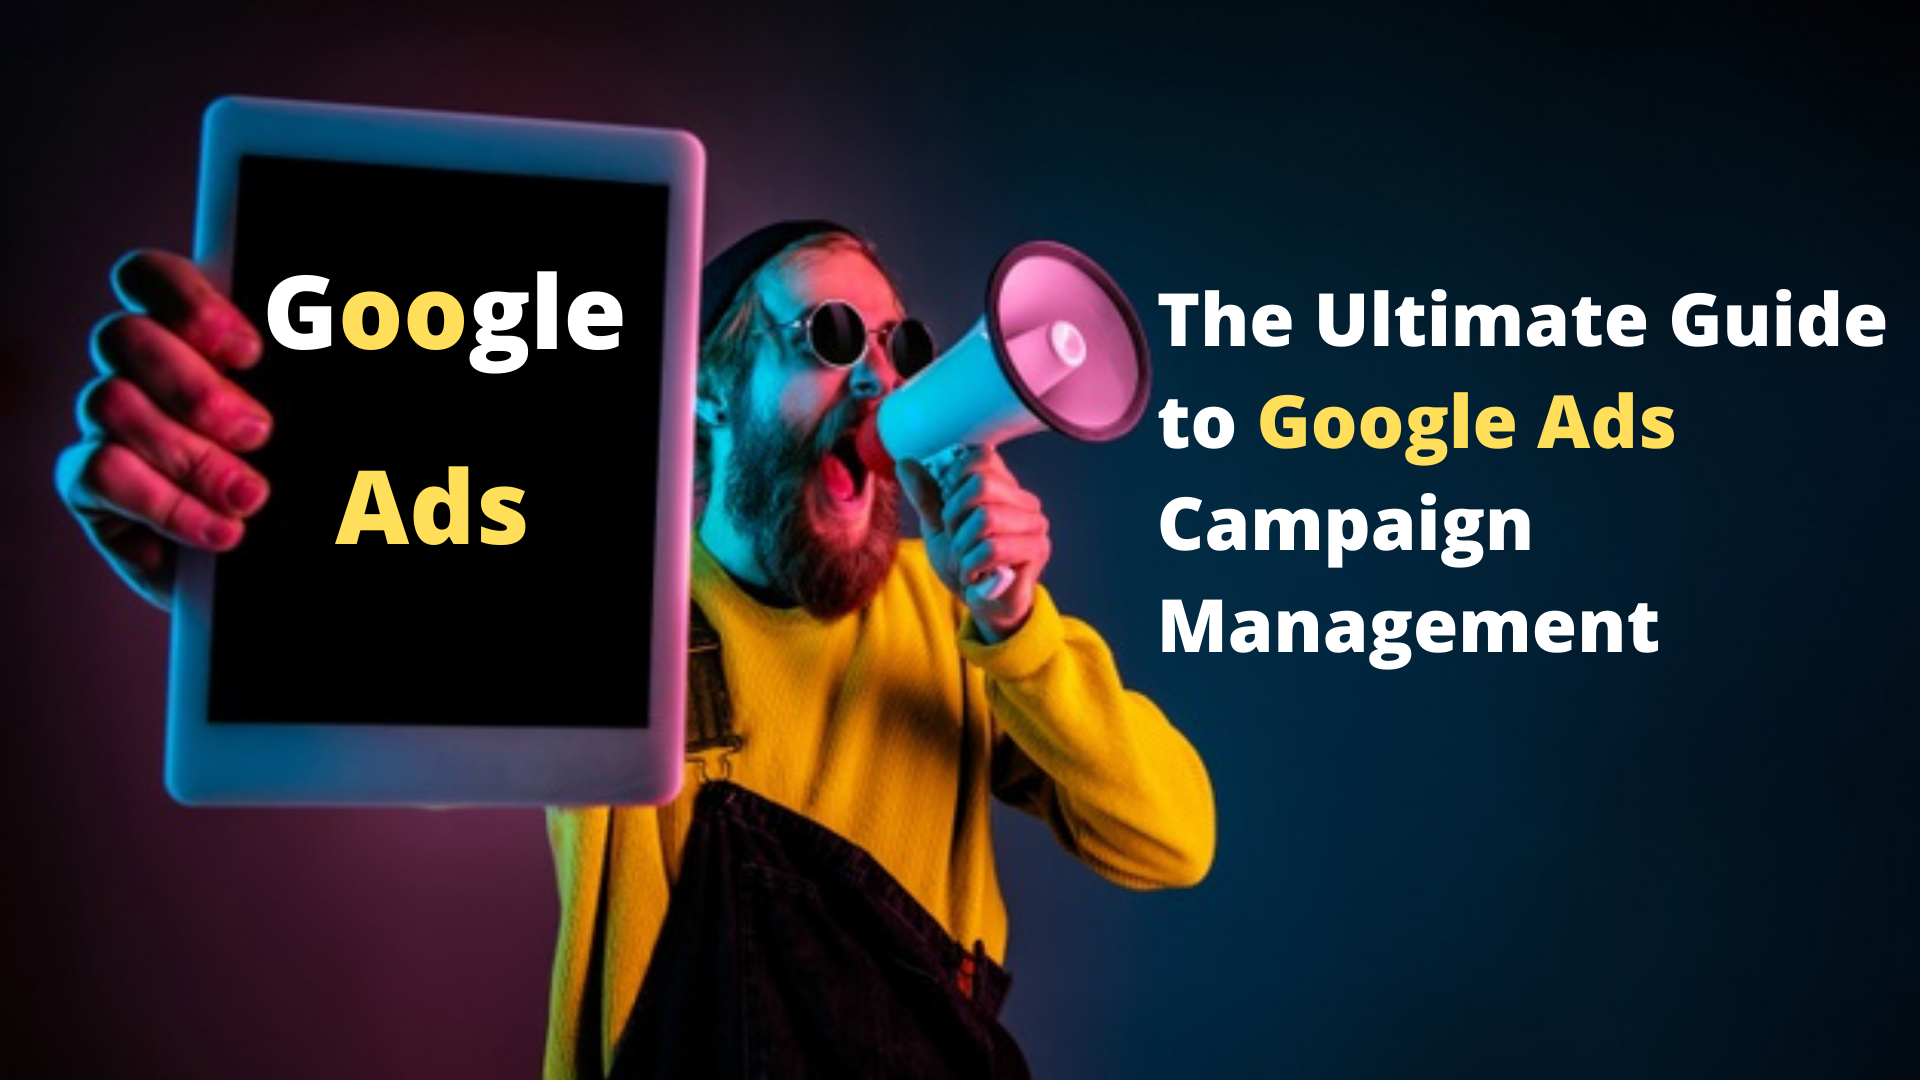 The Ultimate Guide to Google Ads Campaign Management